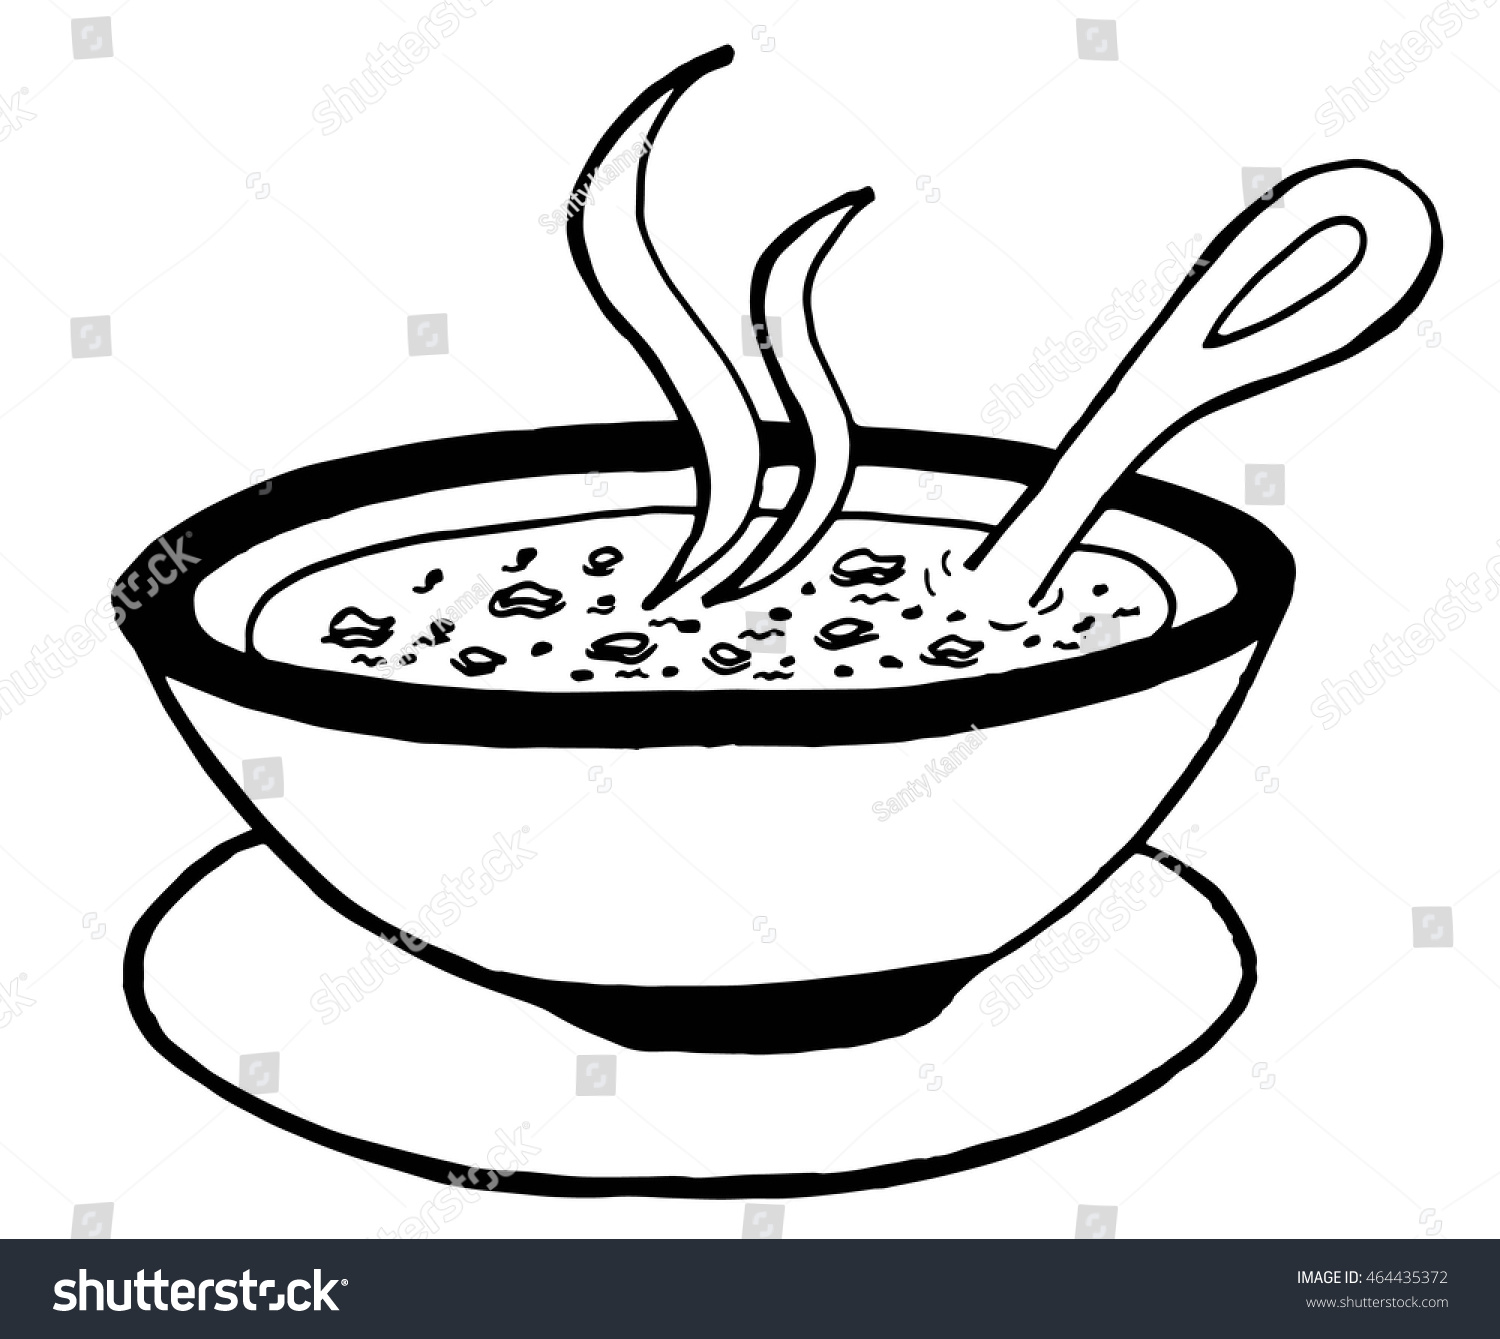 hight resolution of simple hand drawn doodle of a bowl of soup